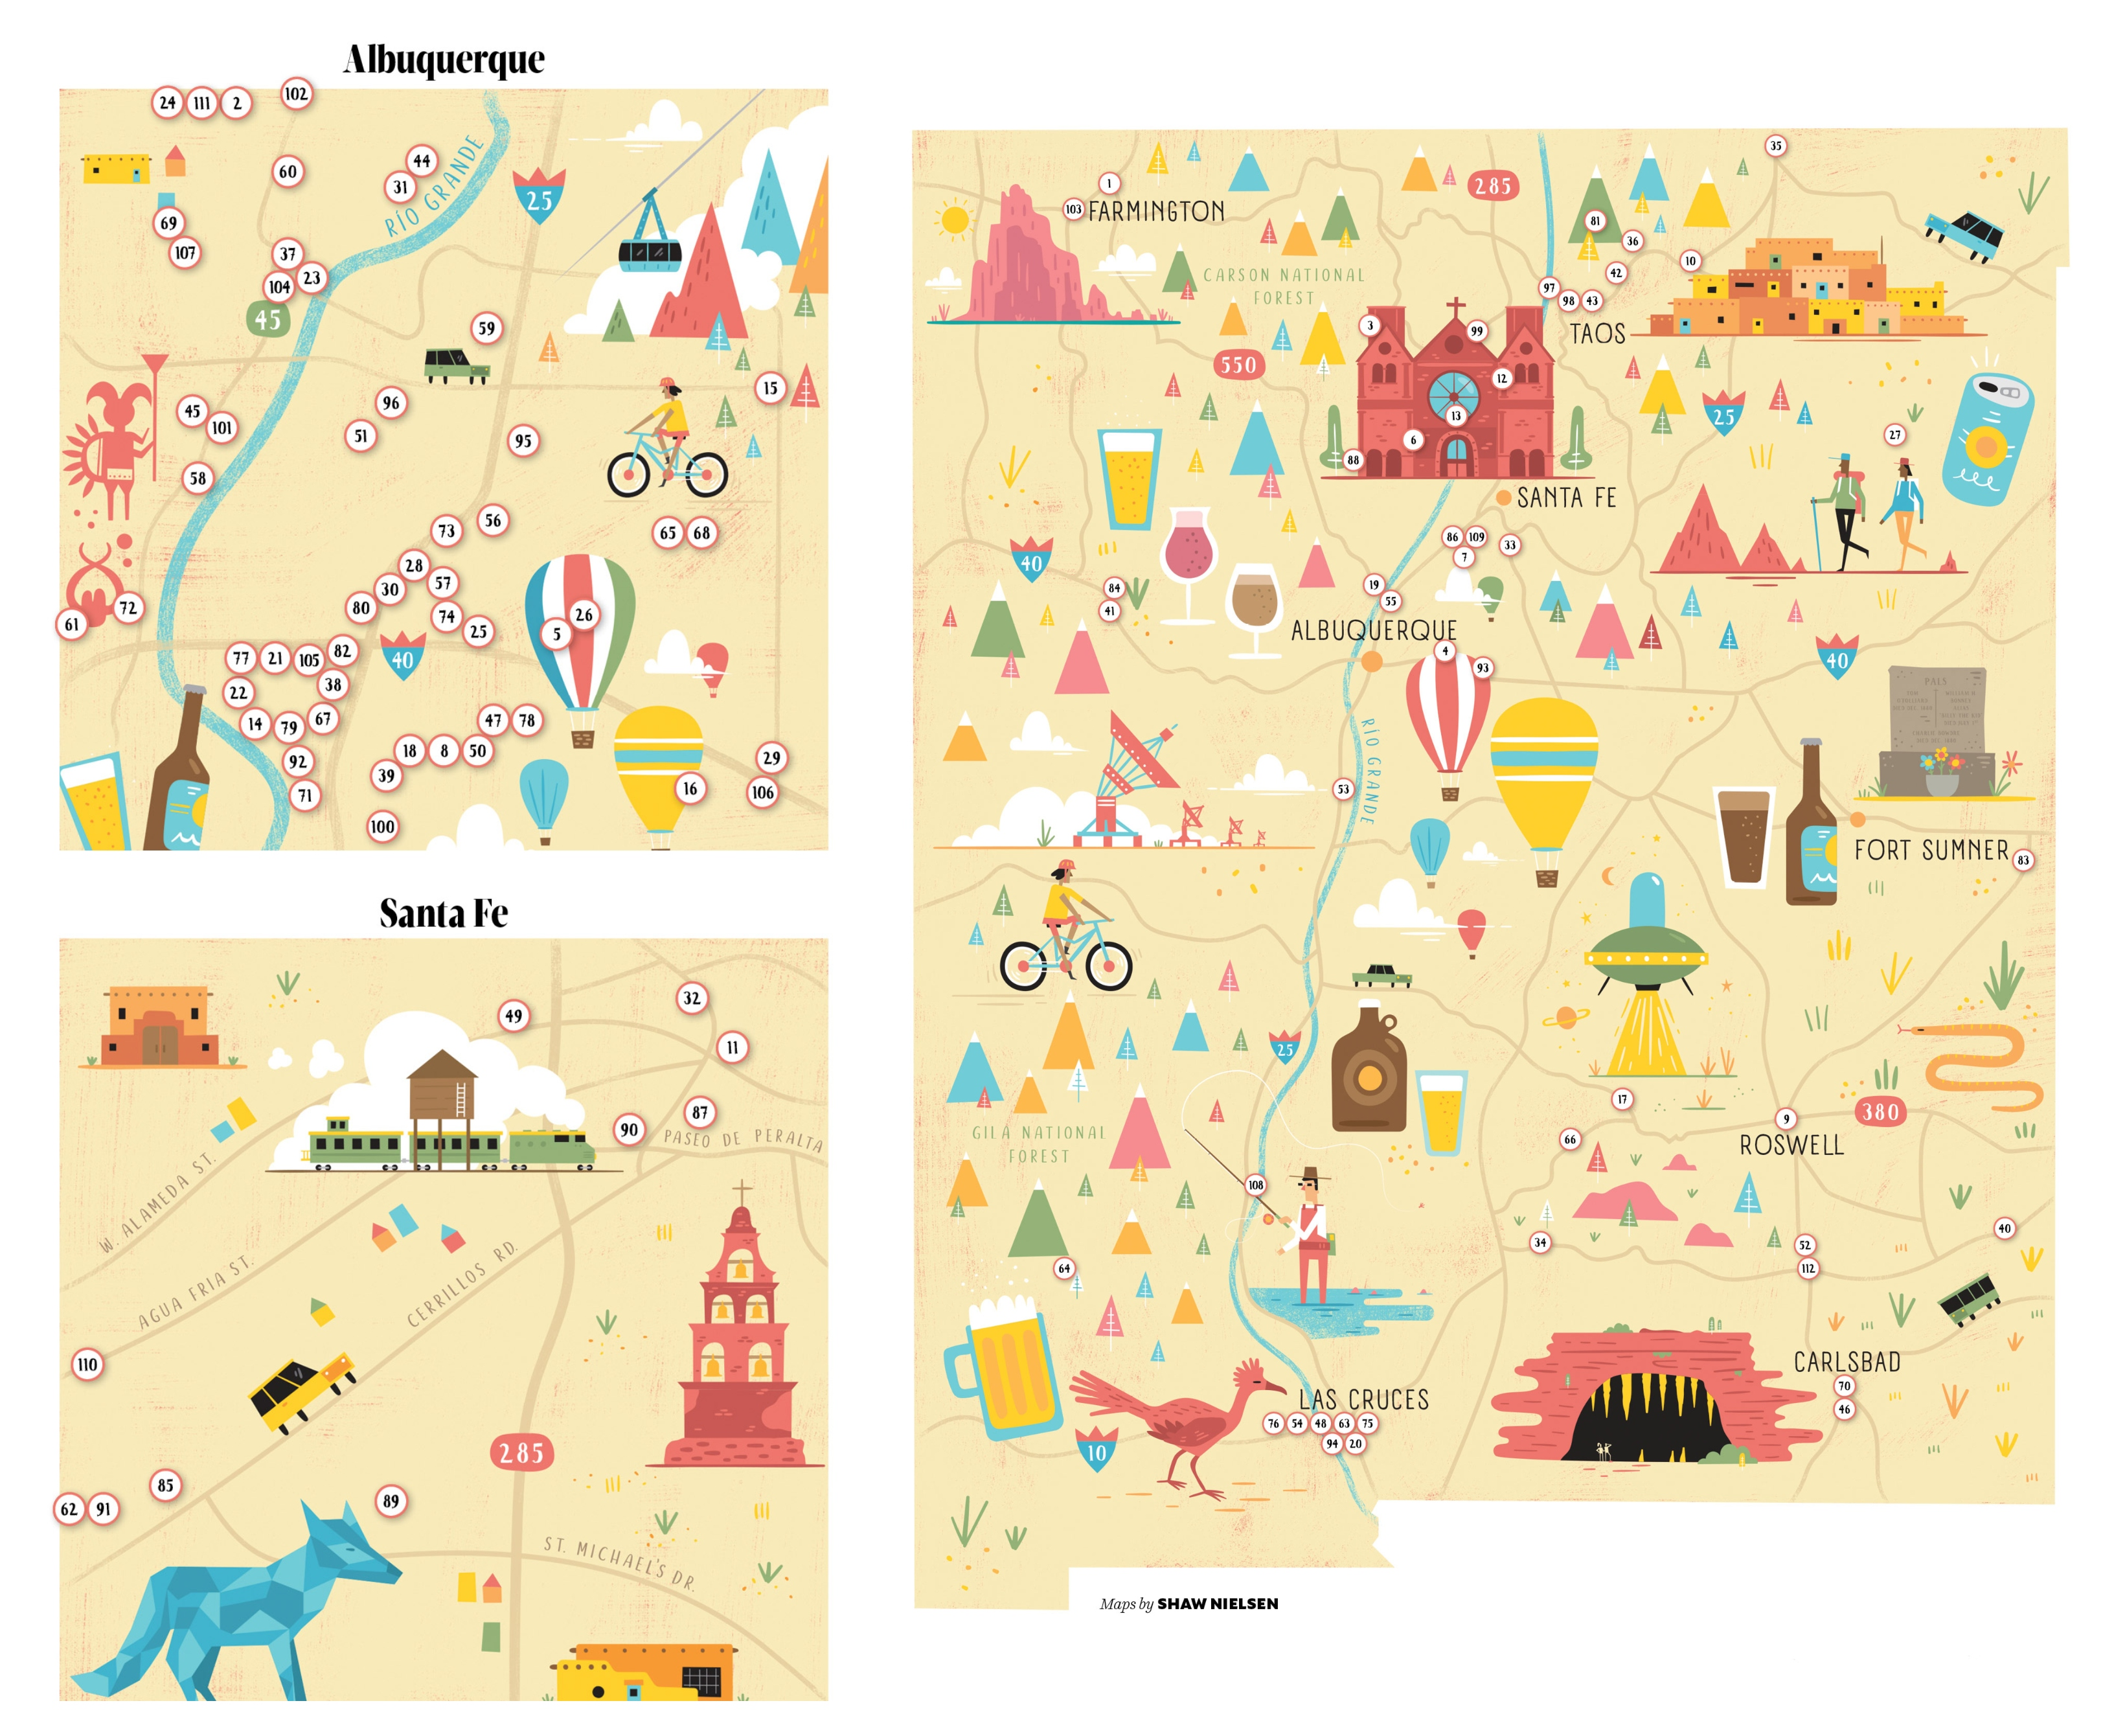 The Ultimate Craft Beer Guide to New Mexico. on love s united states map, media map, sugar map, attractions map, government map, pizza map, marine map, ice cream map,